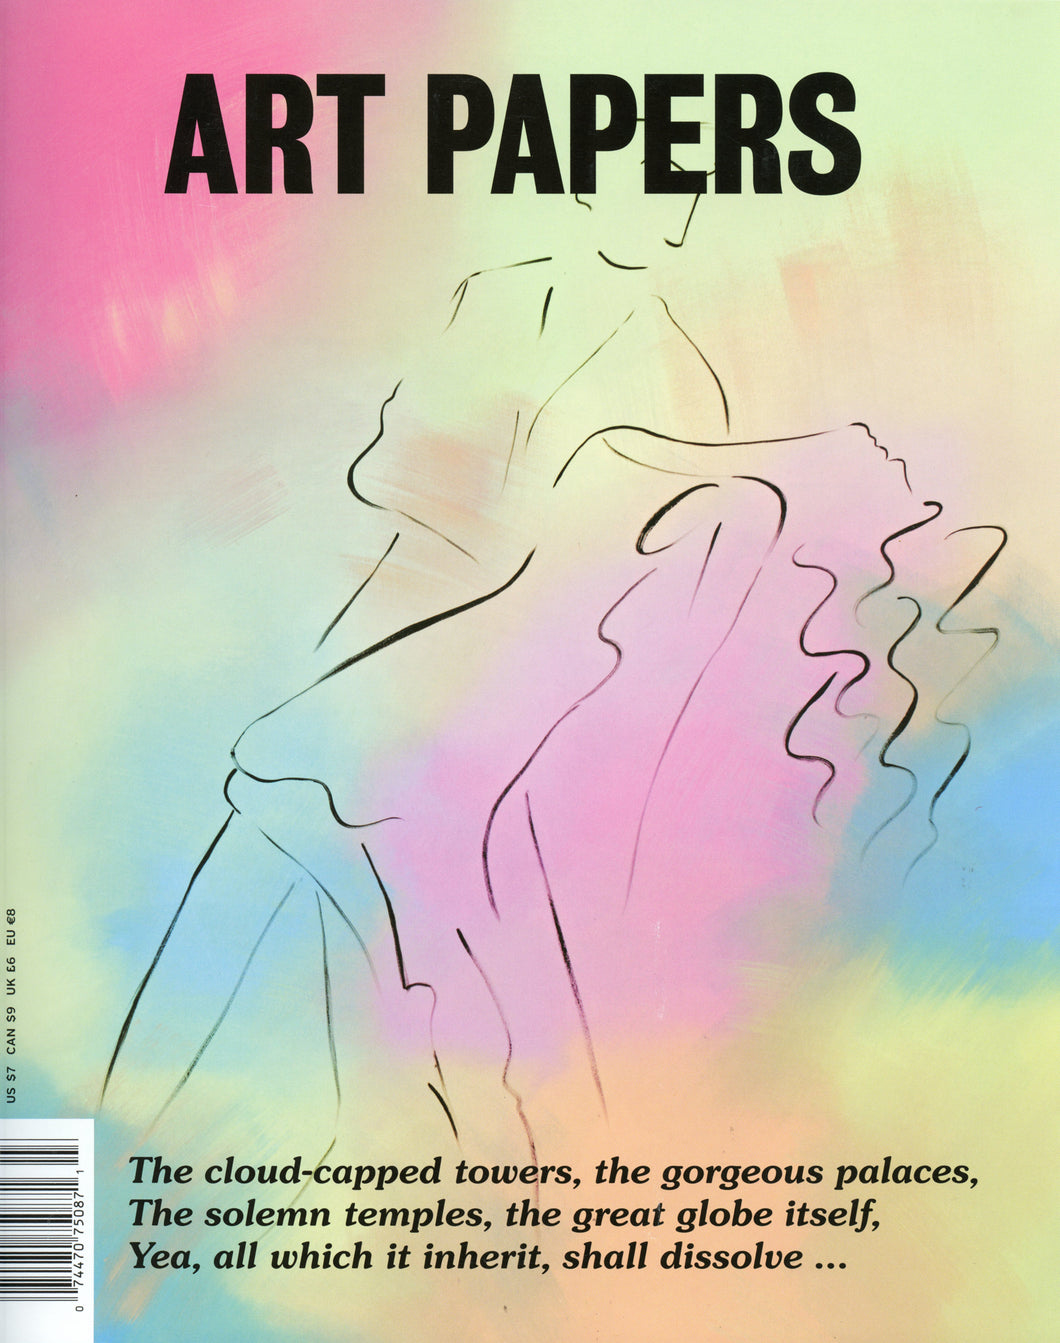 ART PAPERS 39.02 - Mar/Apr 2015